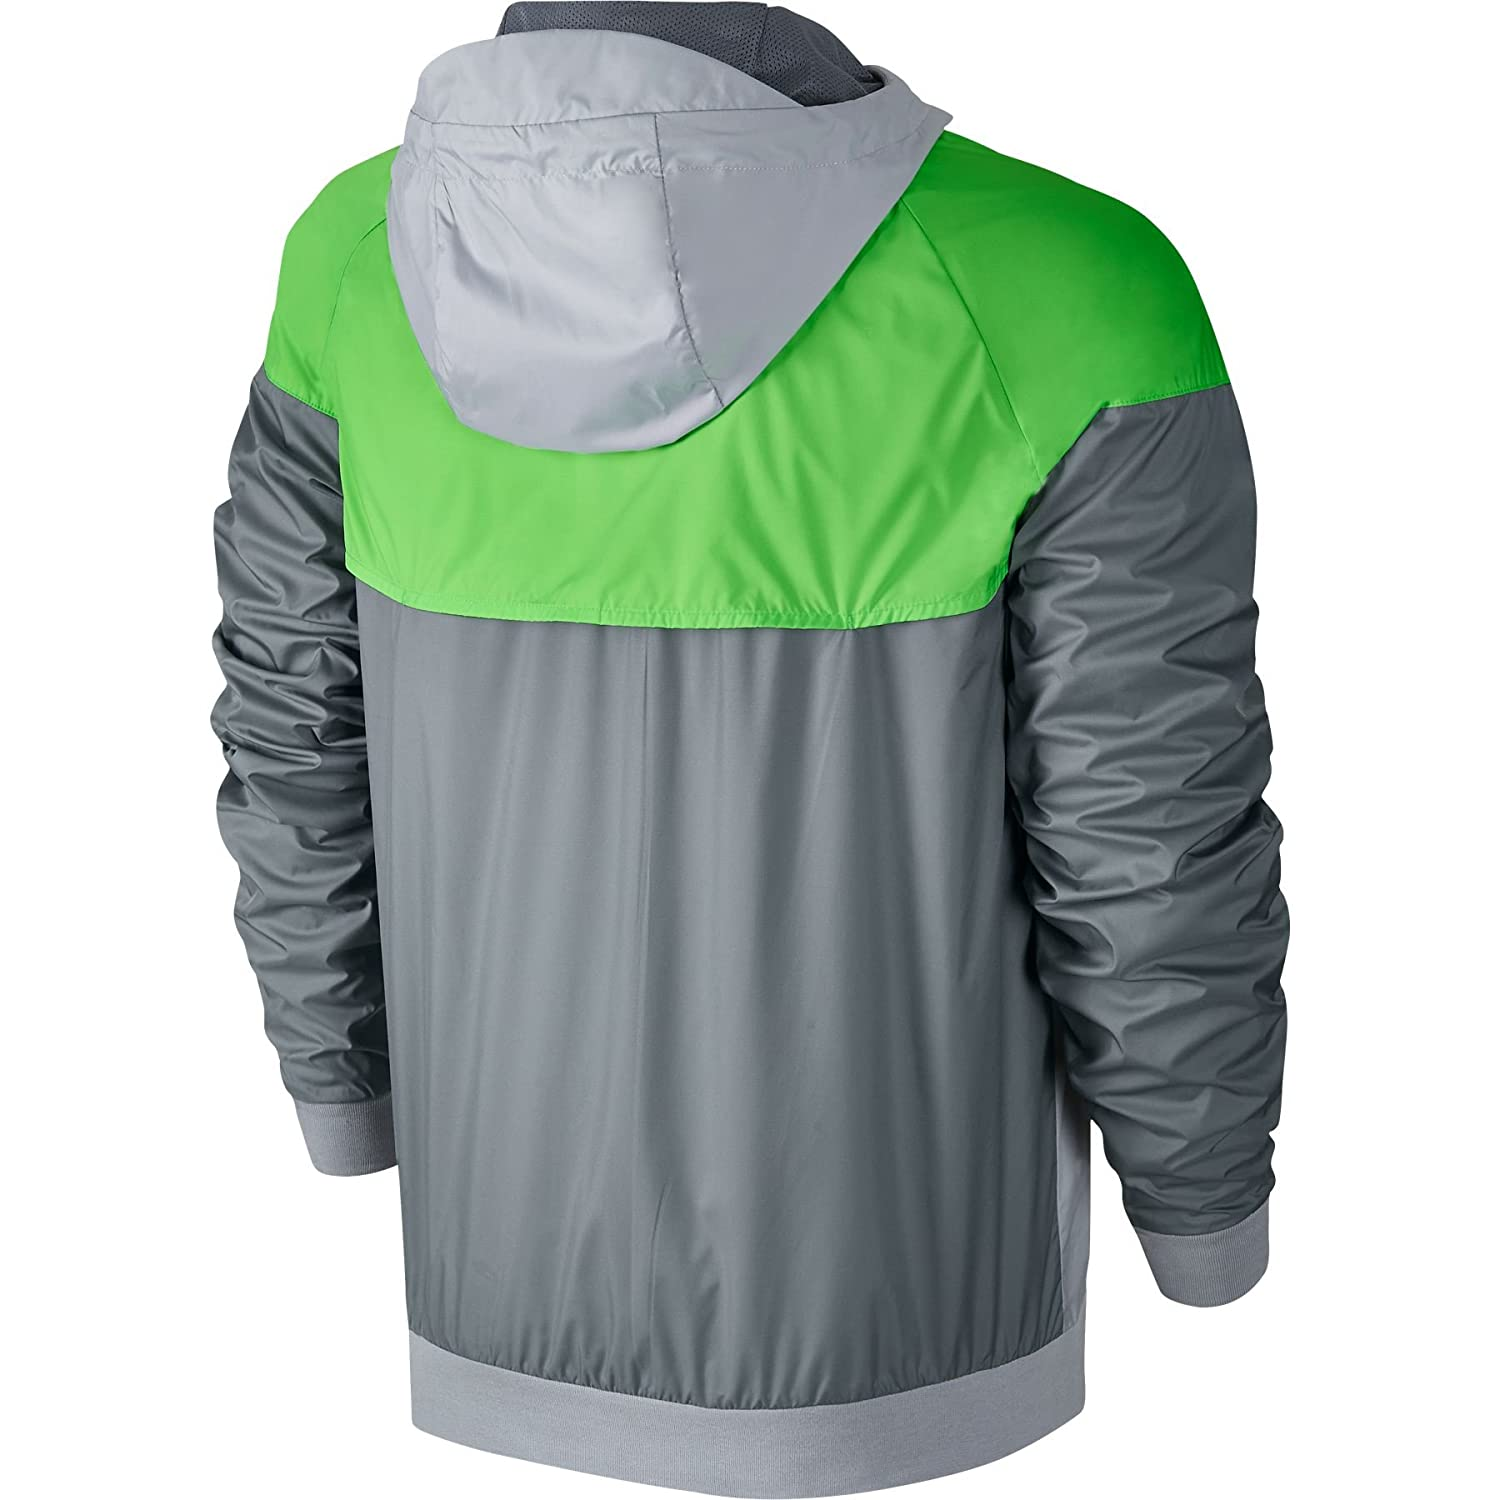 2c96d53c3 Nike Mens Windrunner Hooded Track Jacket Wolf Grey/Voltage Green/White  727324-013 Size Large: Amazon.co.uk: Sports & Outdoors